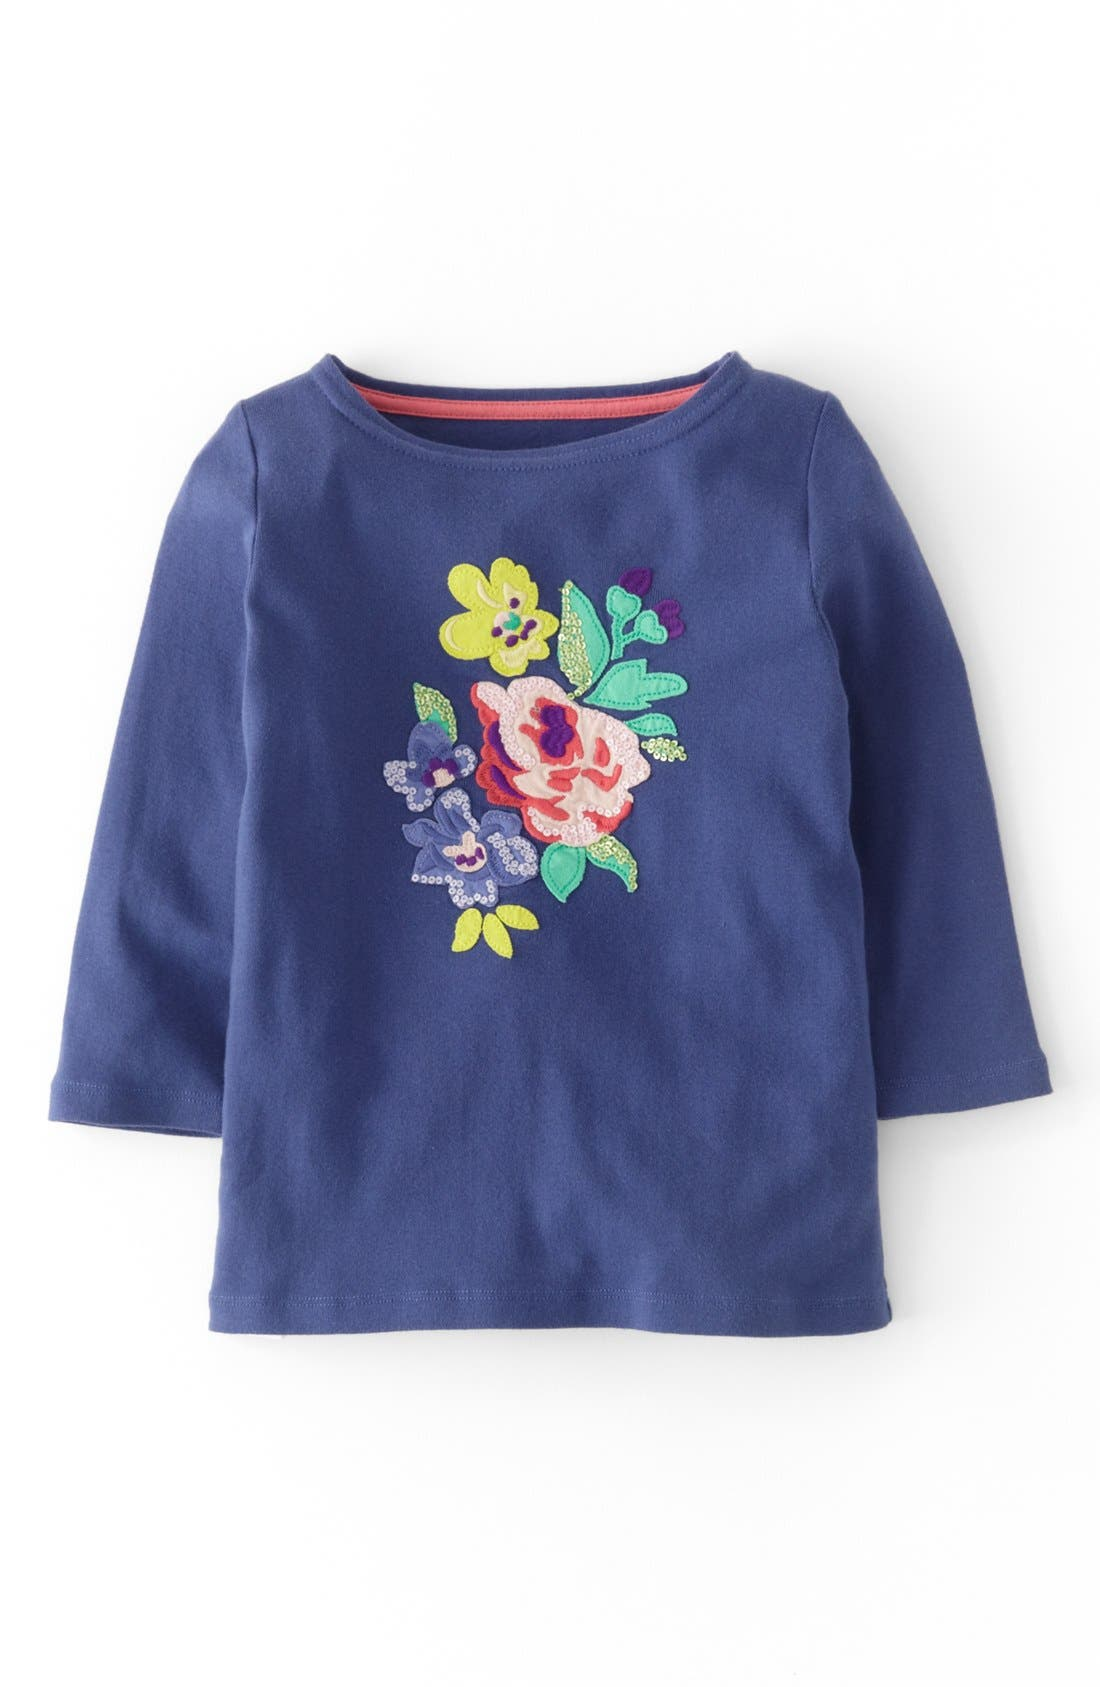 Alternate Image 1 Selected - Mini Boden 'Twinkly' Long Sleeve Tee (Toddler Girls, Little Girls & Big Girls)